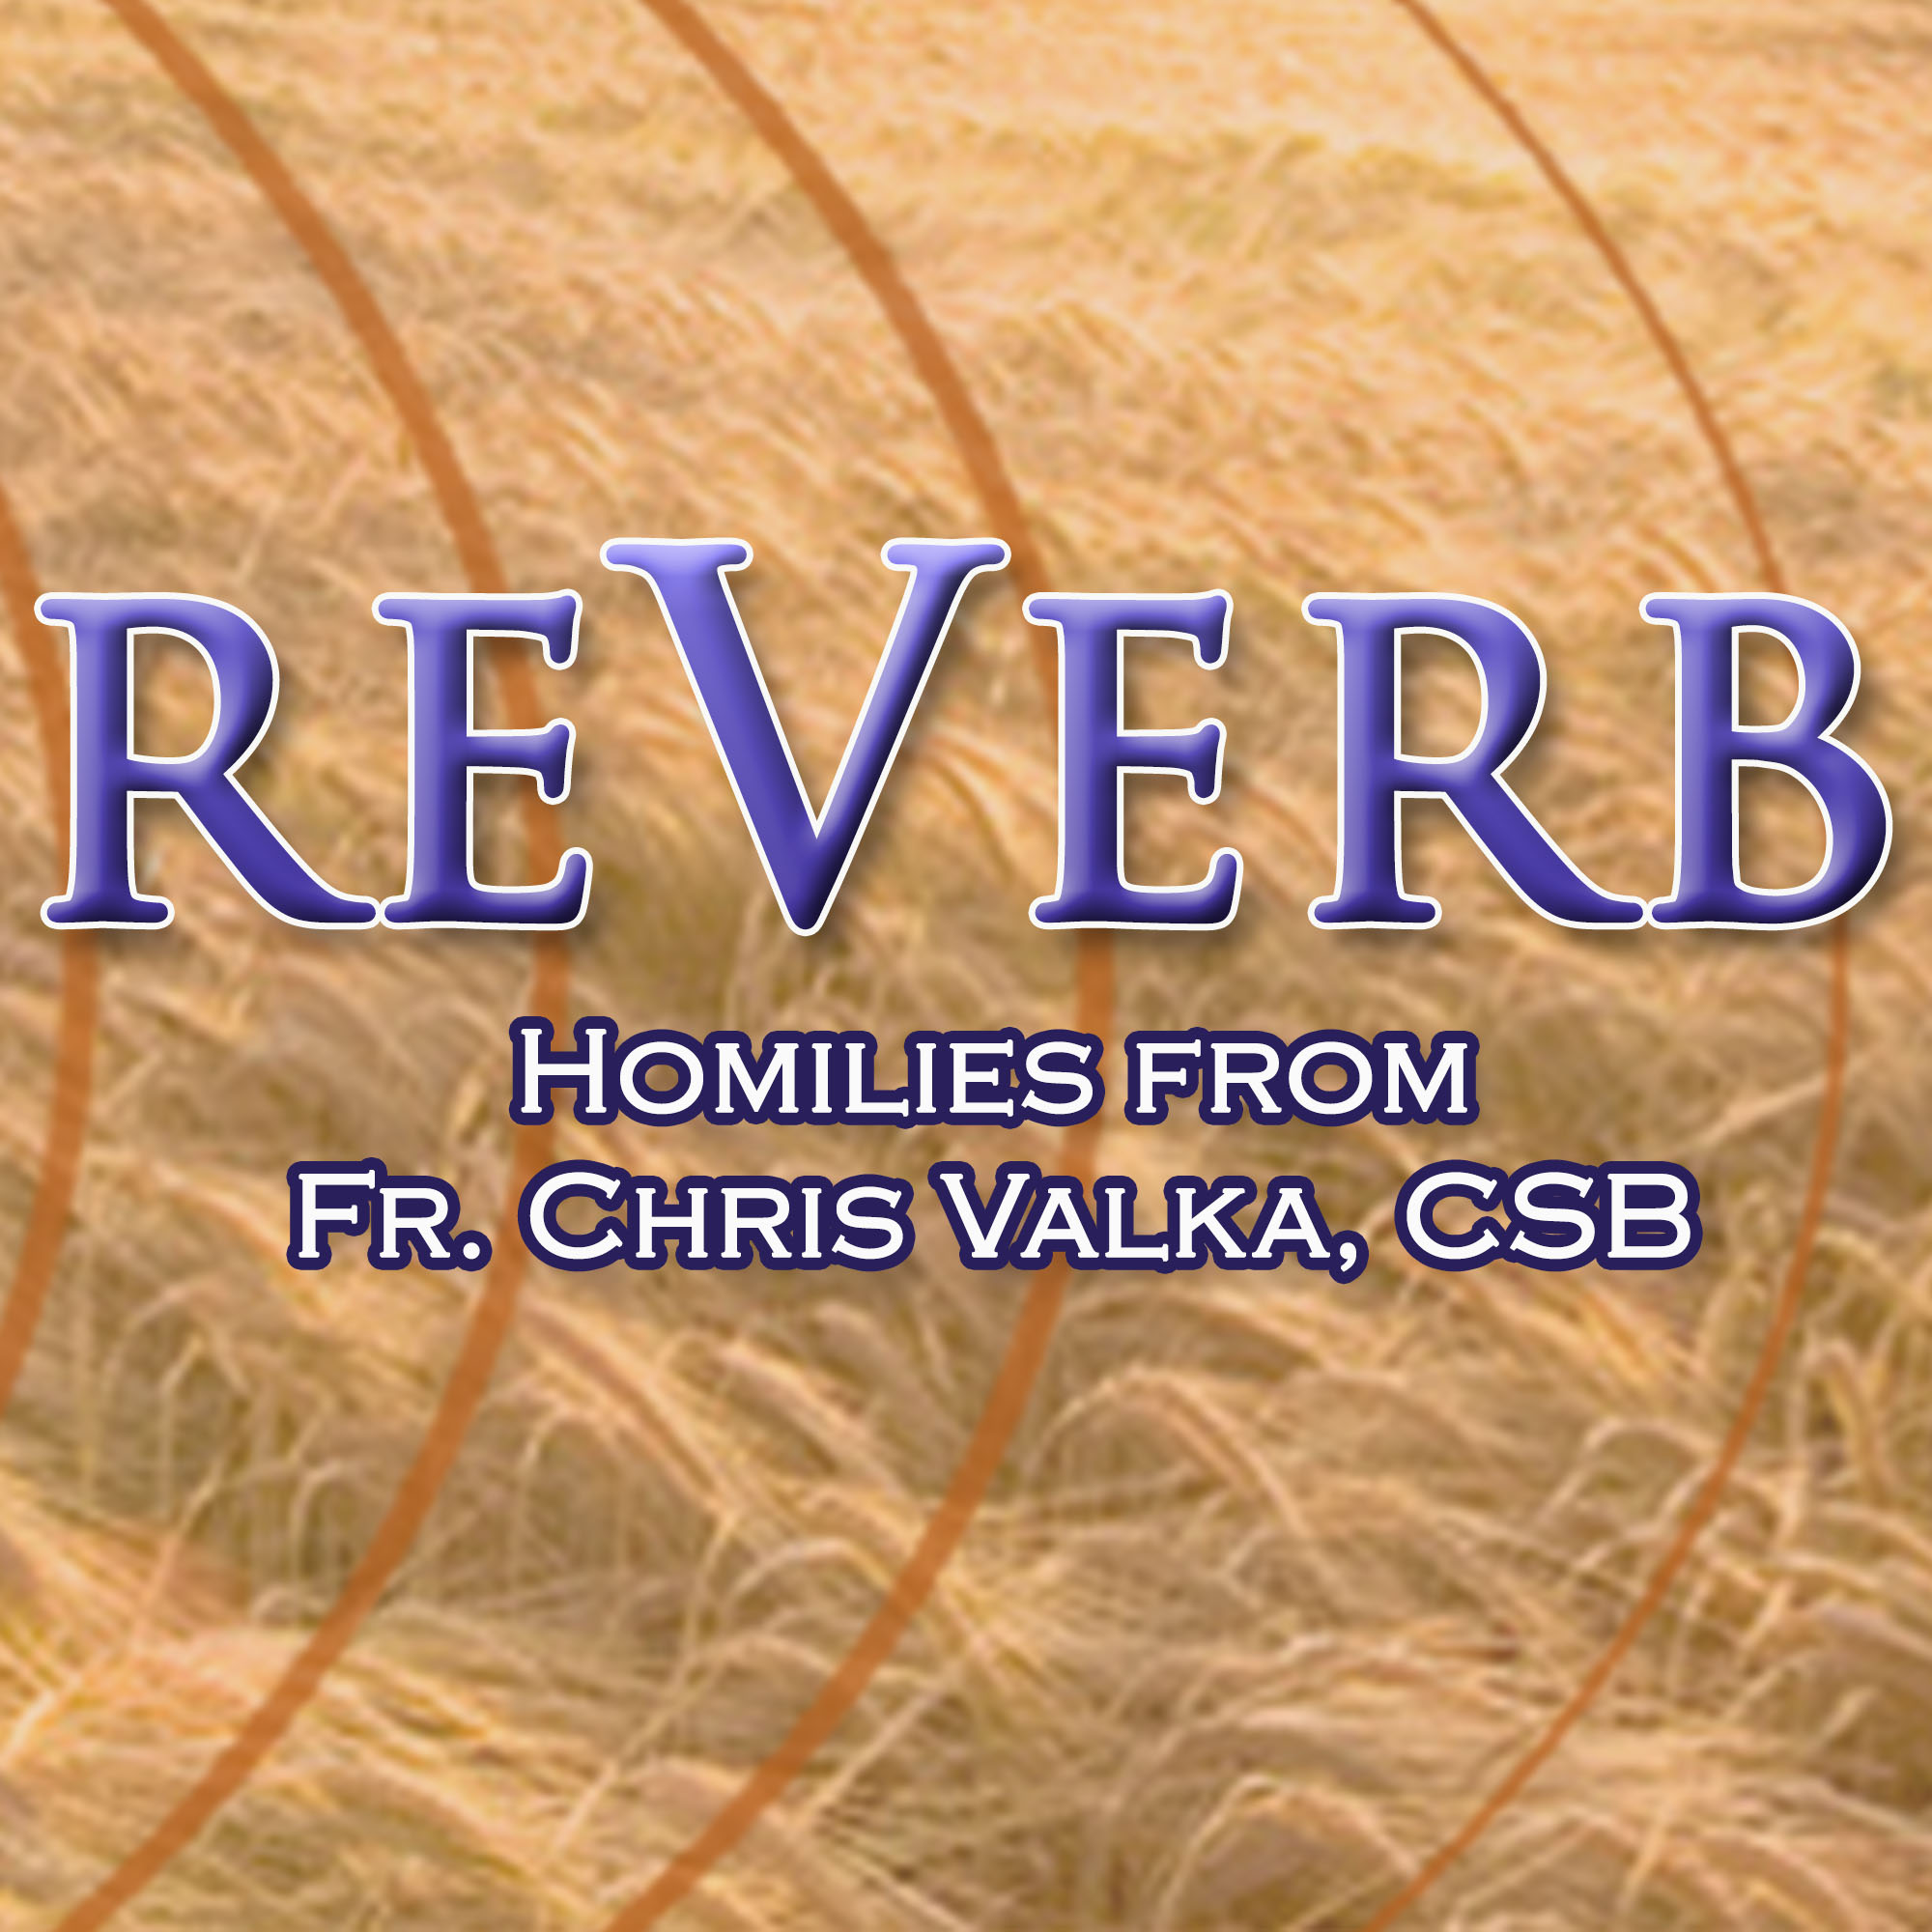 reVerb Homilies